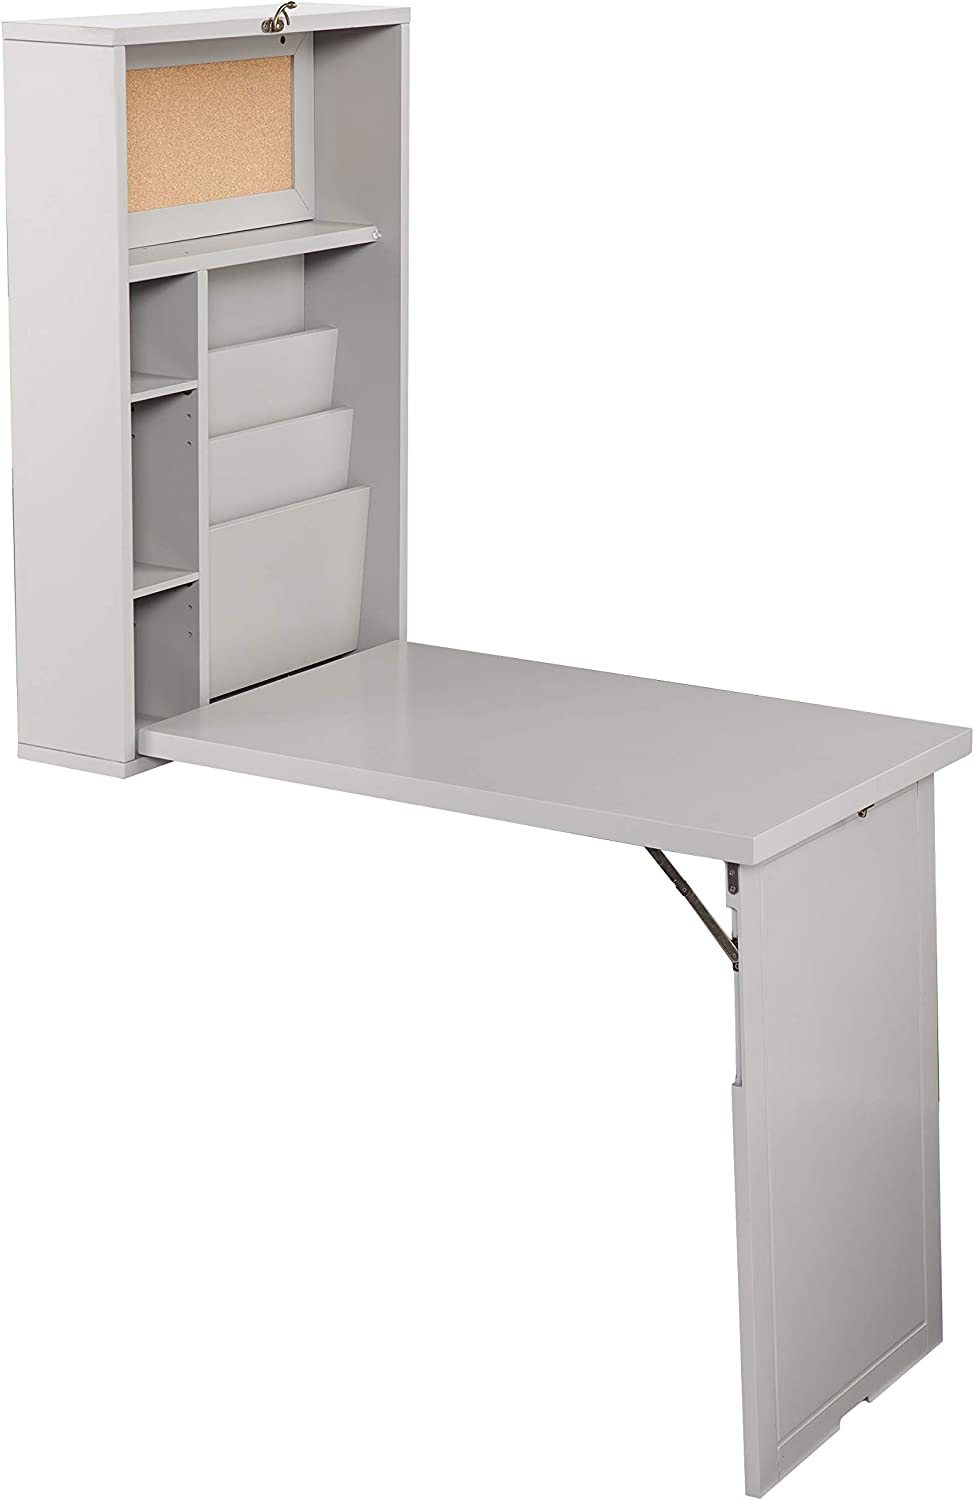 Southern Enterprises Max 67% OFF Convertible Low price Wall Mount Desk Grey